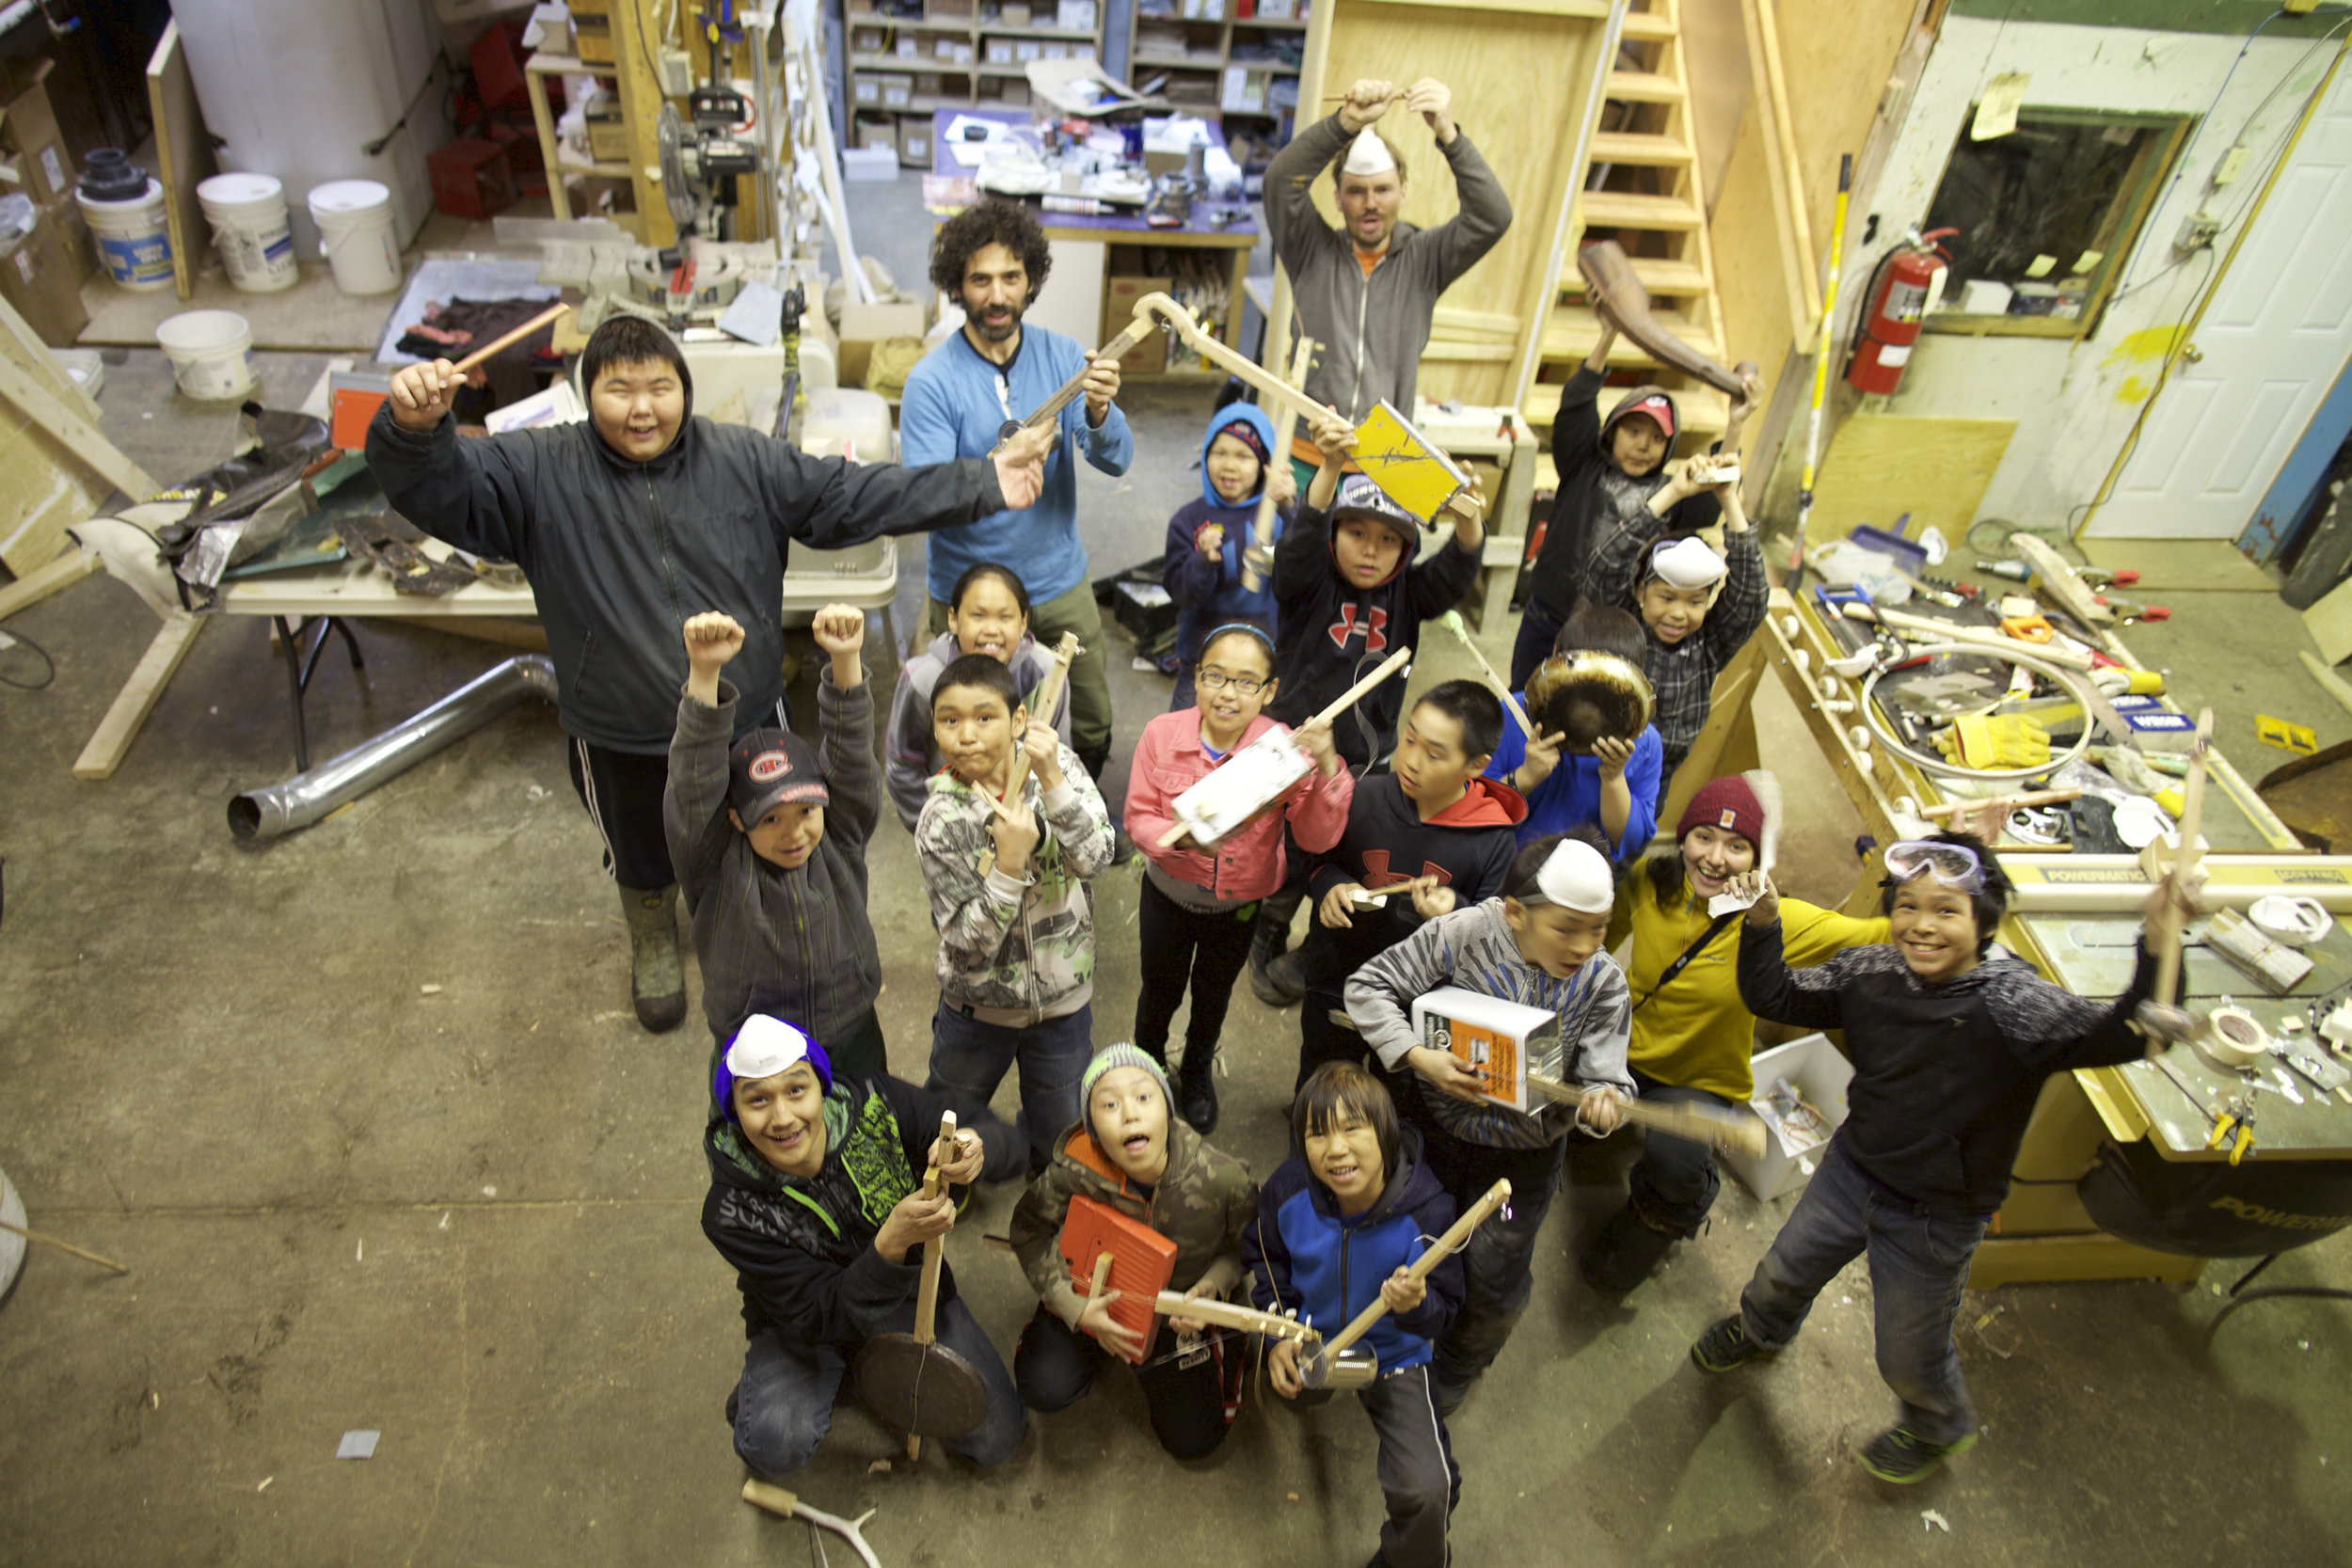 Some of the youth completing their instruments made from found materials in the dump, the burned down high school, and animal bones from the land.